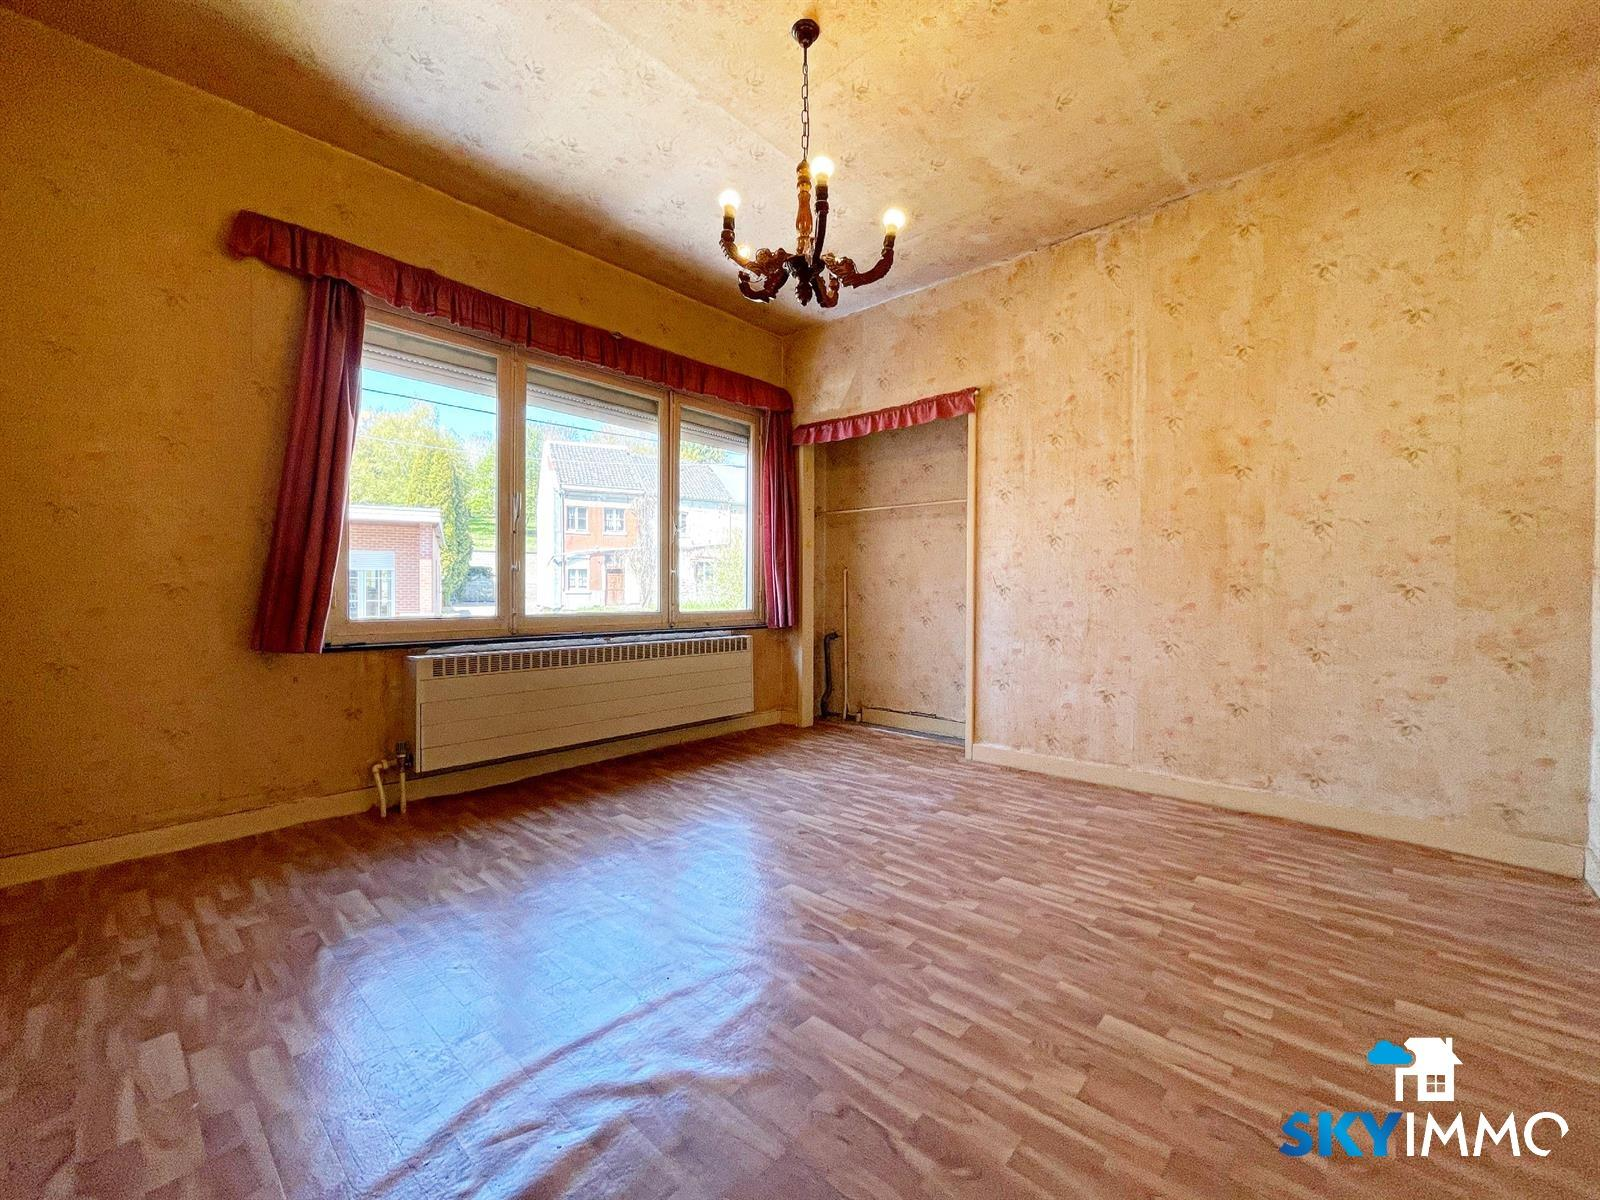 Huis - Flemalle - #4346611-26